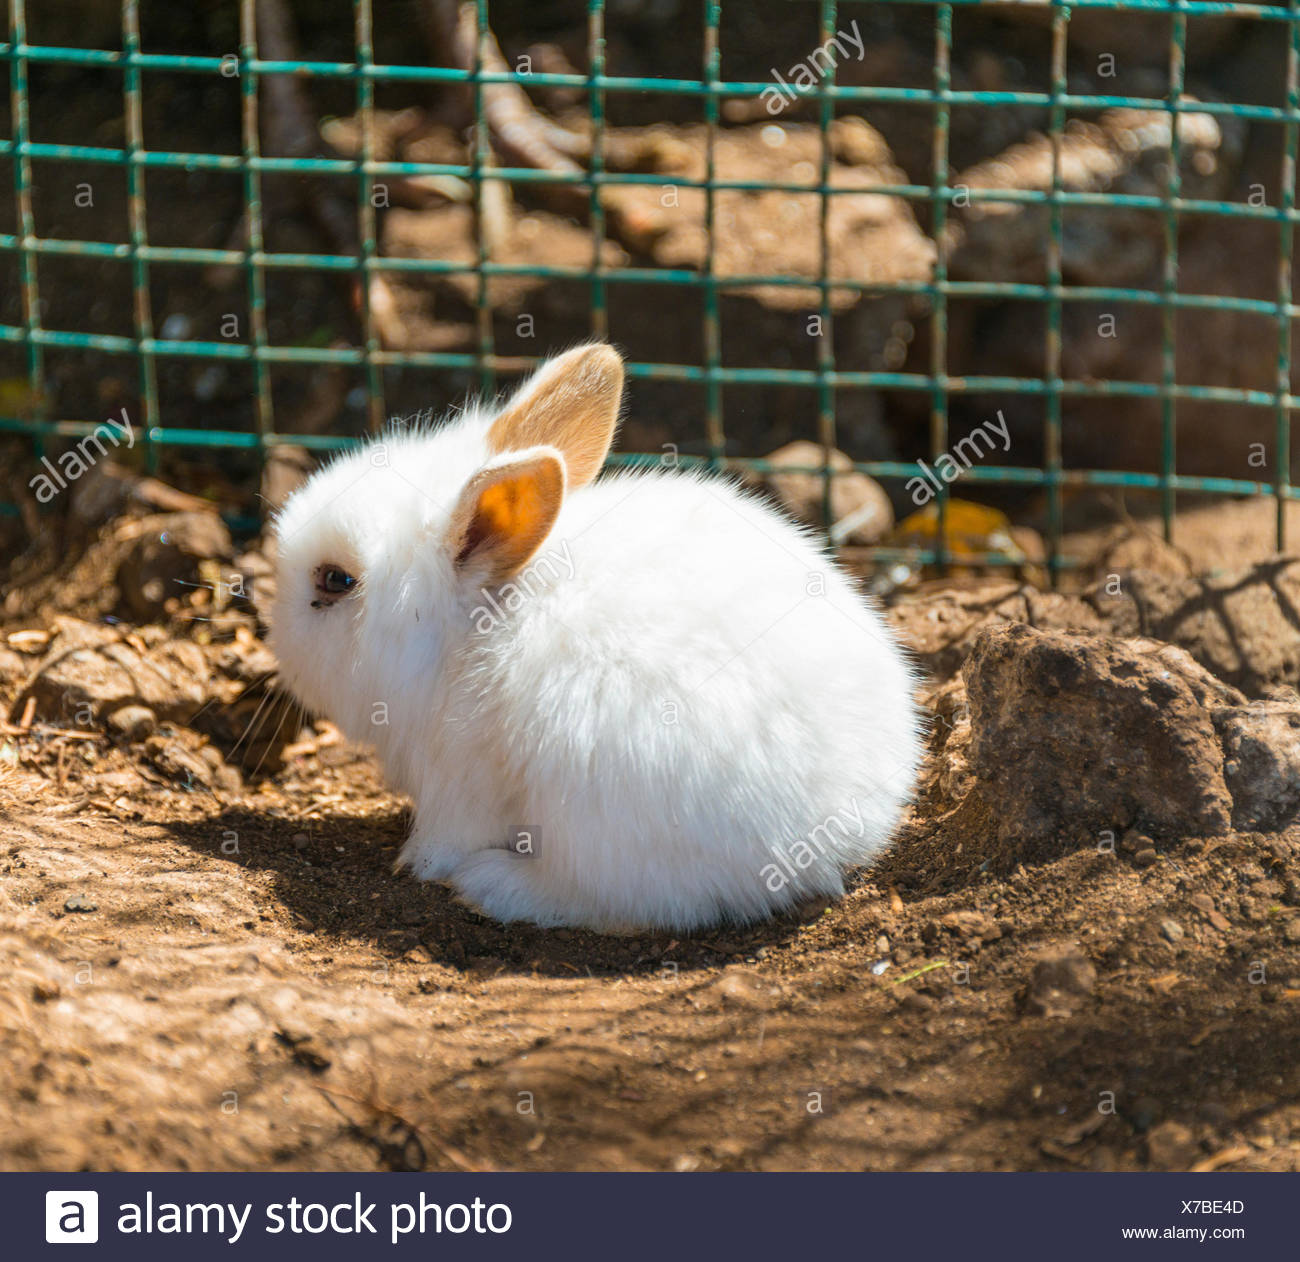 Young white rabbit in a cage, captive - Stock Image